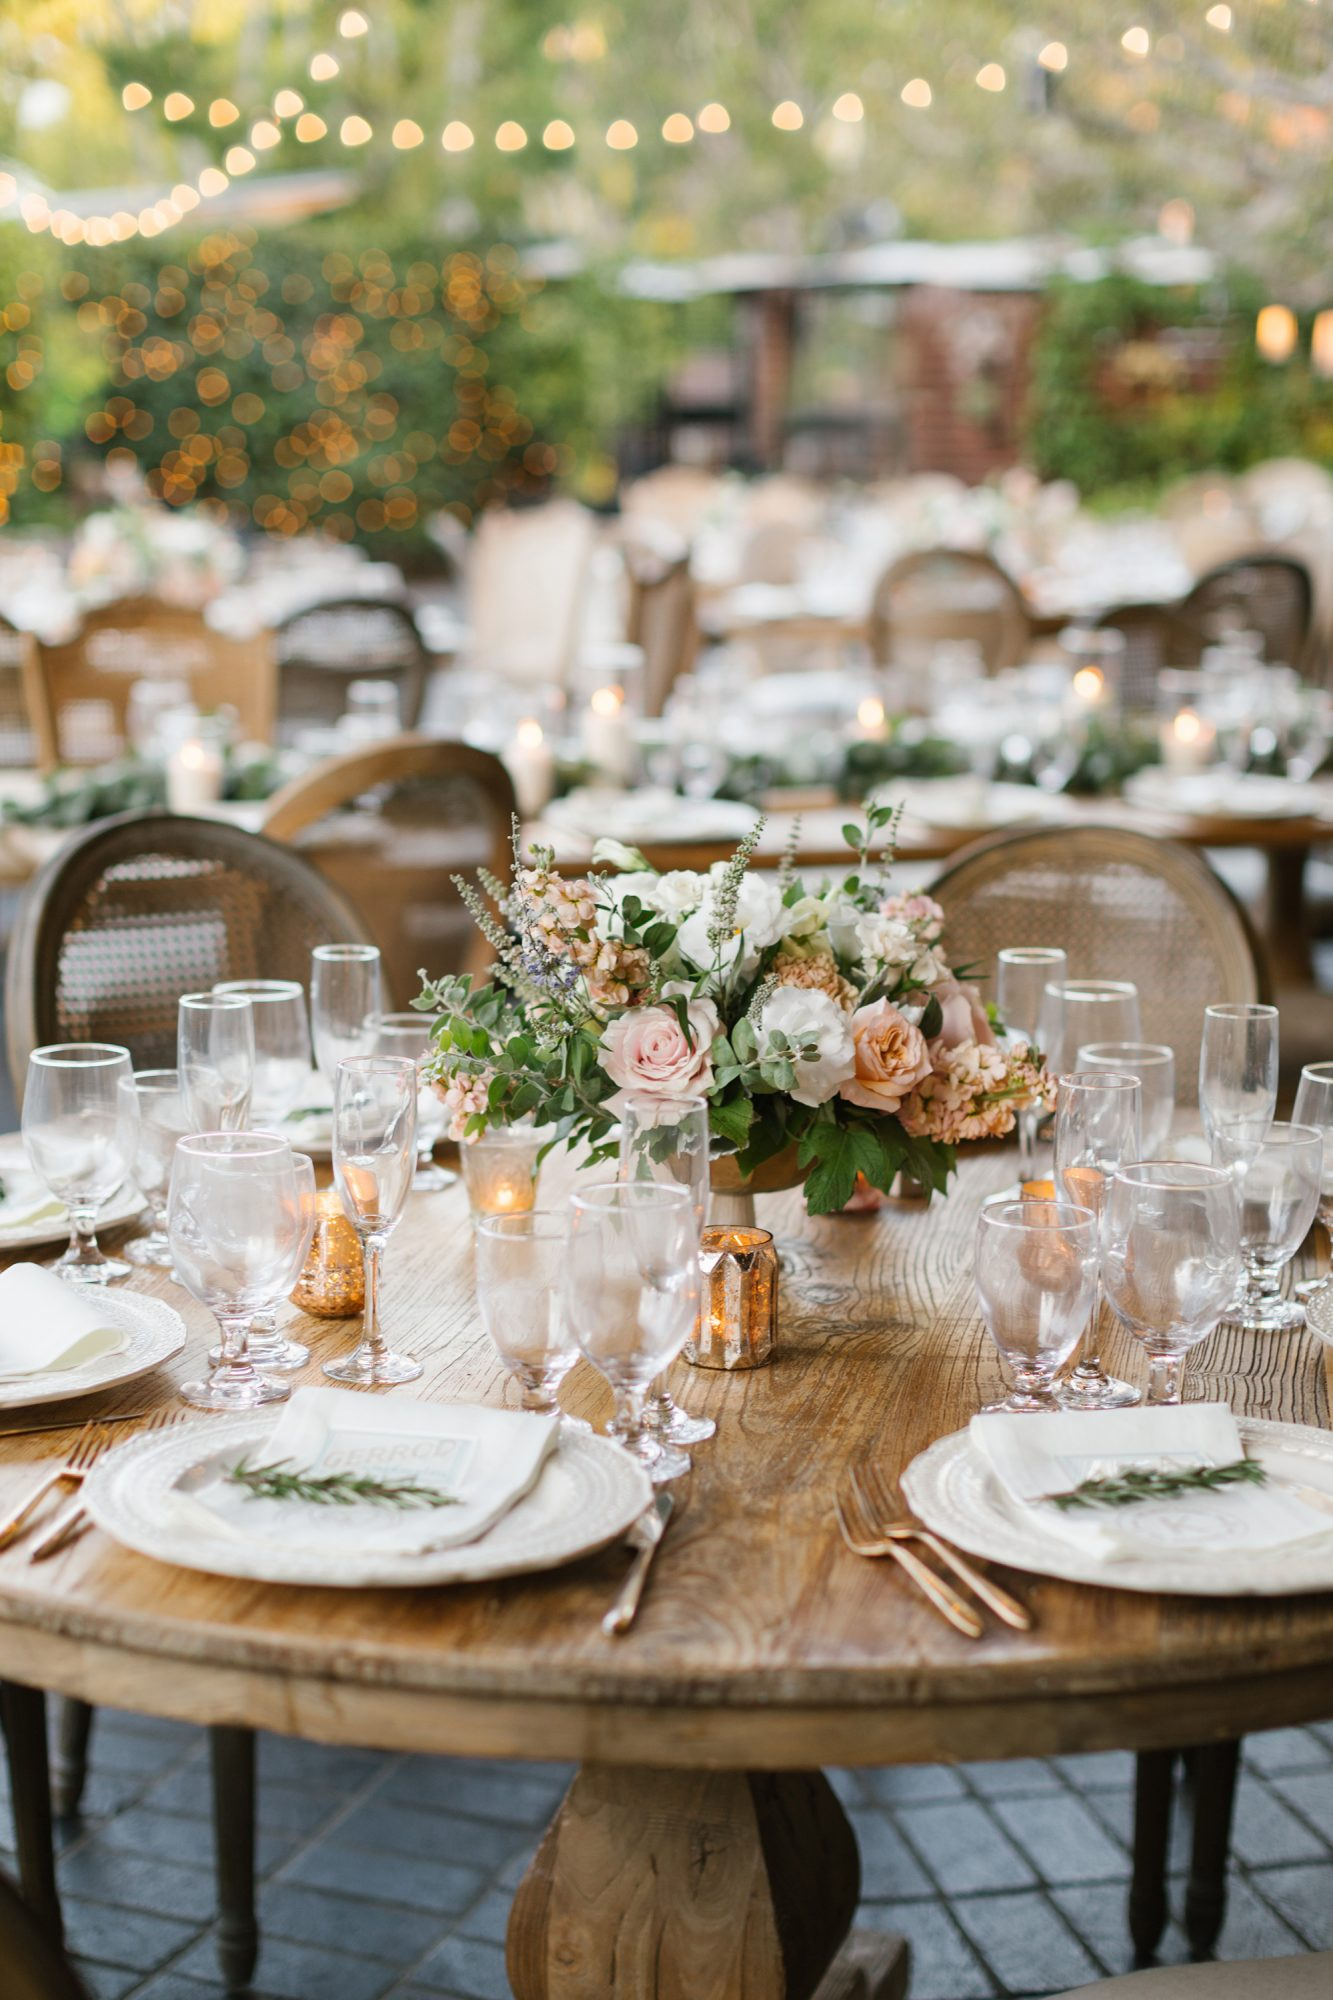 shelana kevin wedding table decor with candle and floral centerpieces